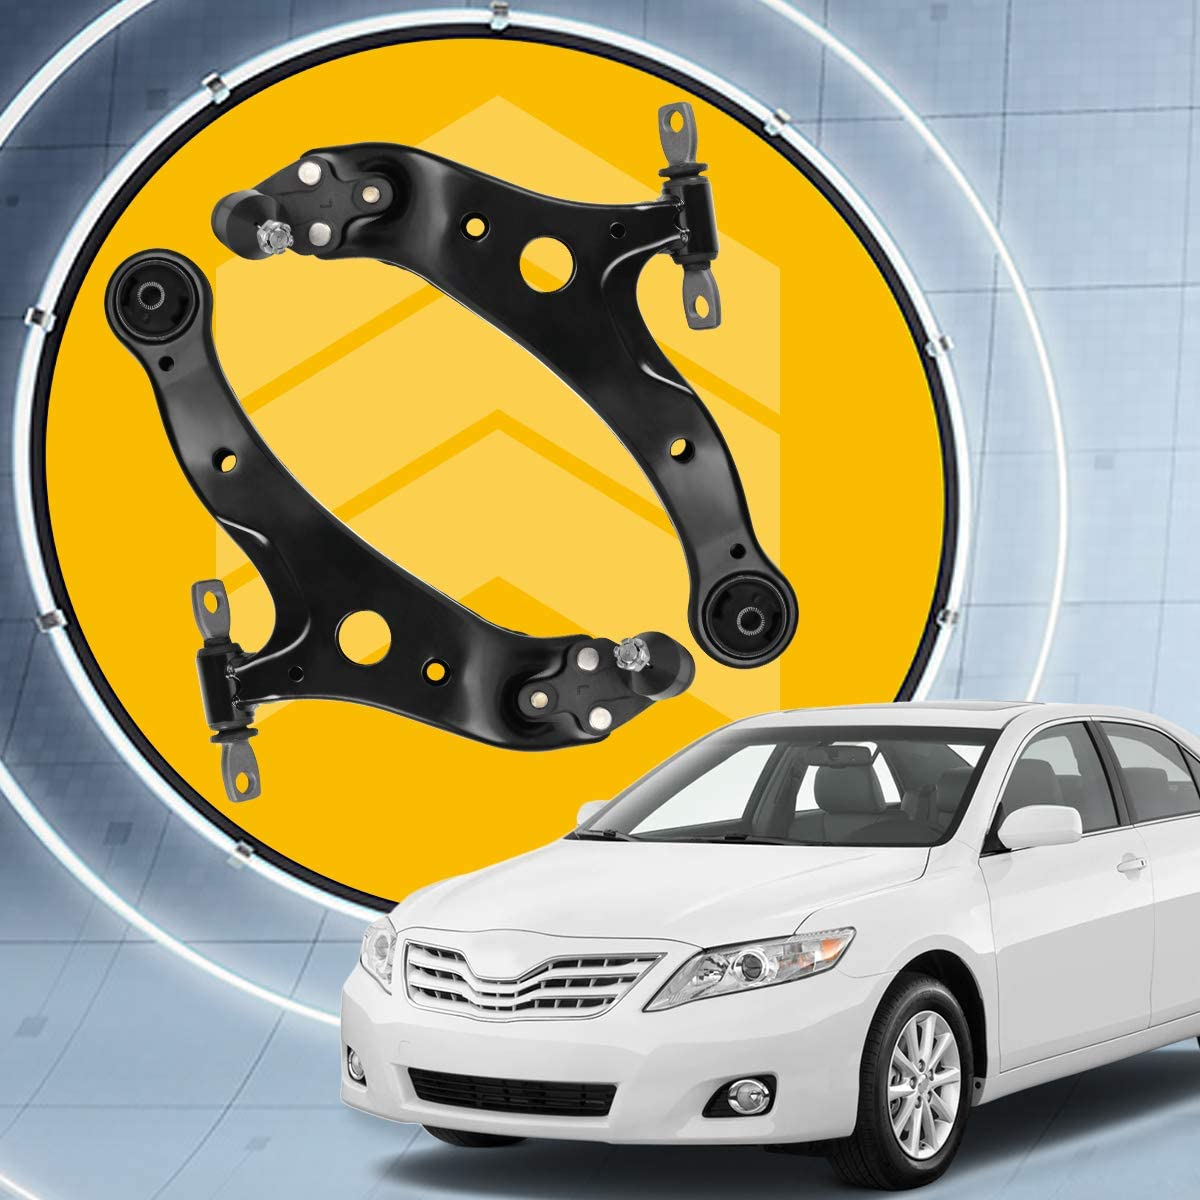 Front Lower Control Arm w//Ball Joint Assembly for 2002-2011 Lexus ES300 ES330 ES350 RX330 RX350 RX400h 2001-2011 Toyota Avalon Camry Highlander Solara